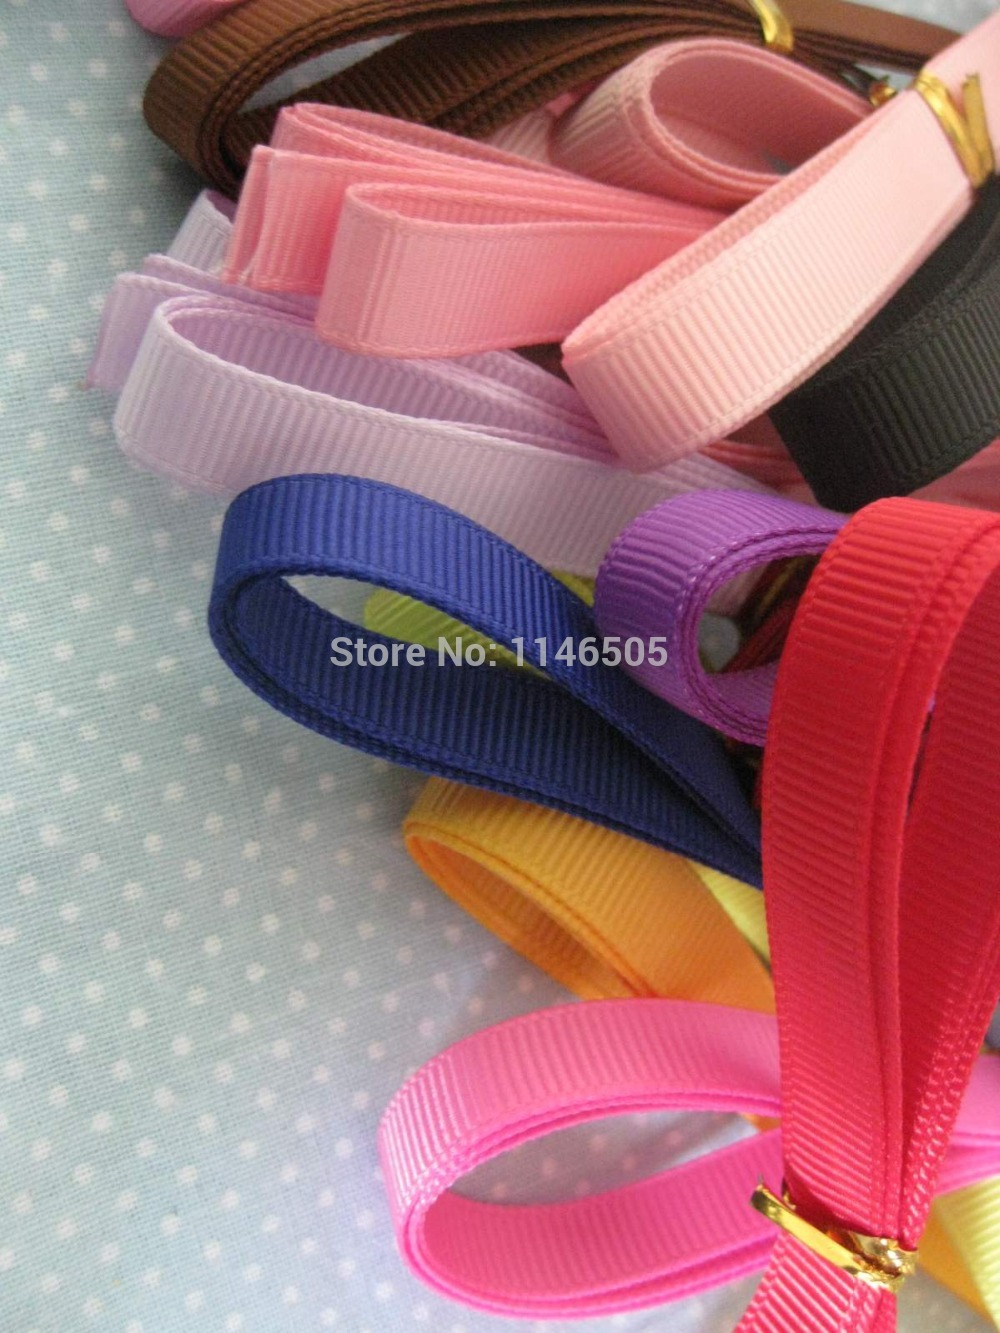 30pcs 3/8 Mix Colors Random Style Colorful Grosgrain Wedding Party Deco Craft Festive satin ribbon Bows /frozen ribbon